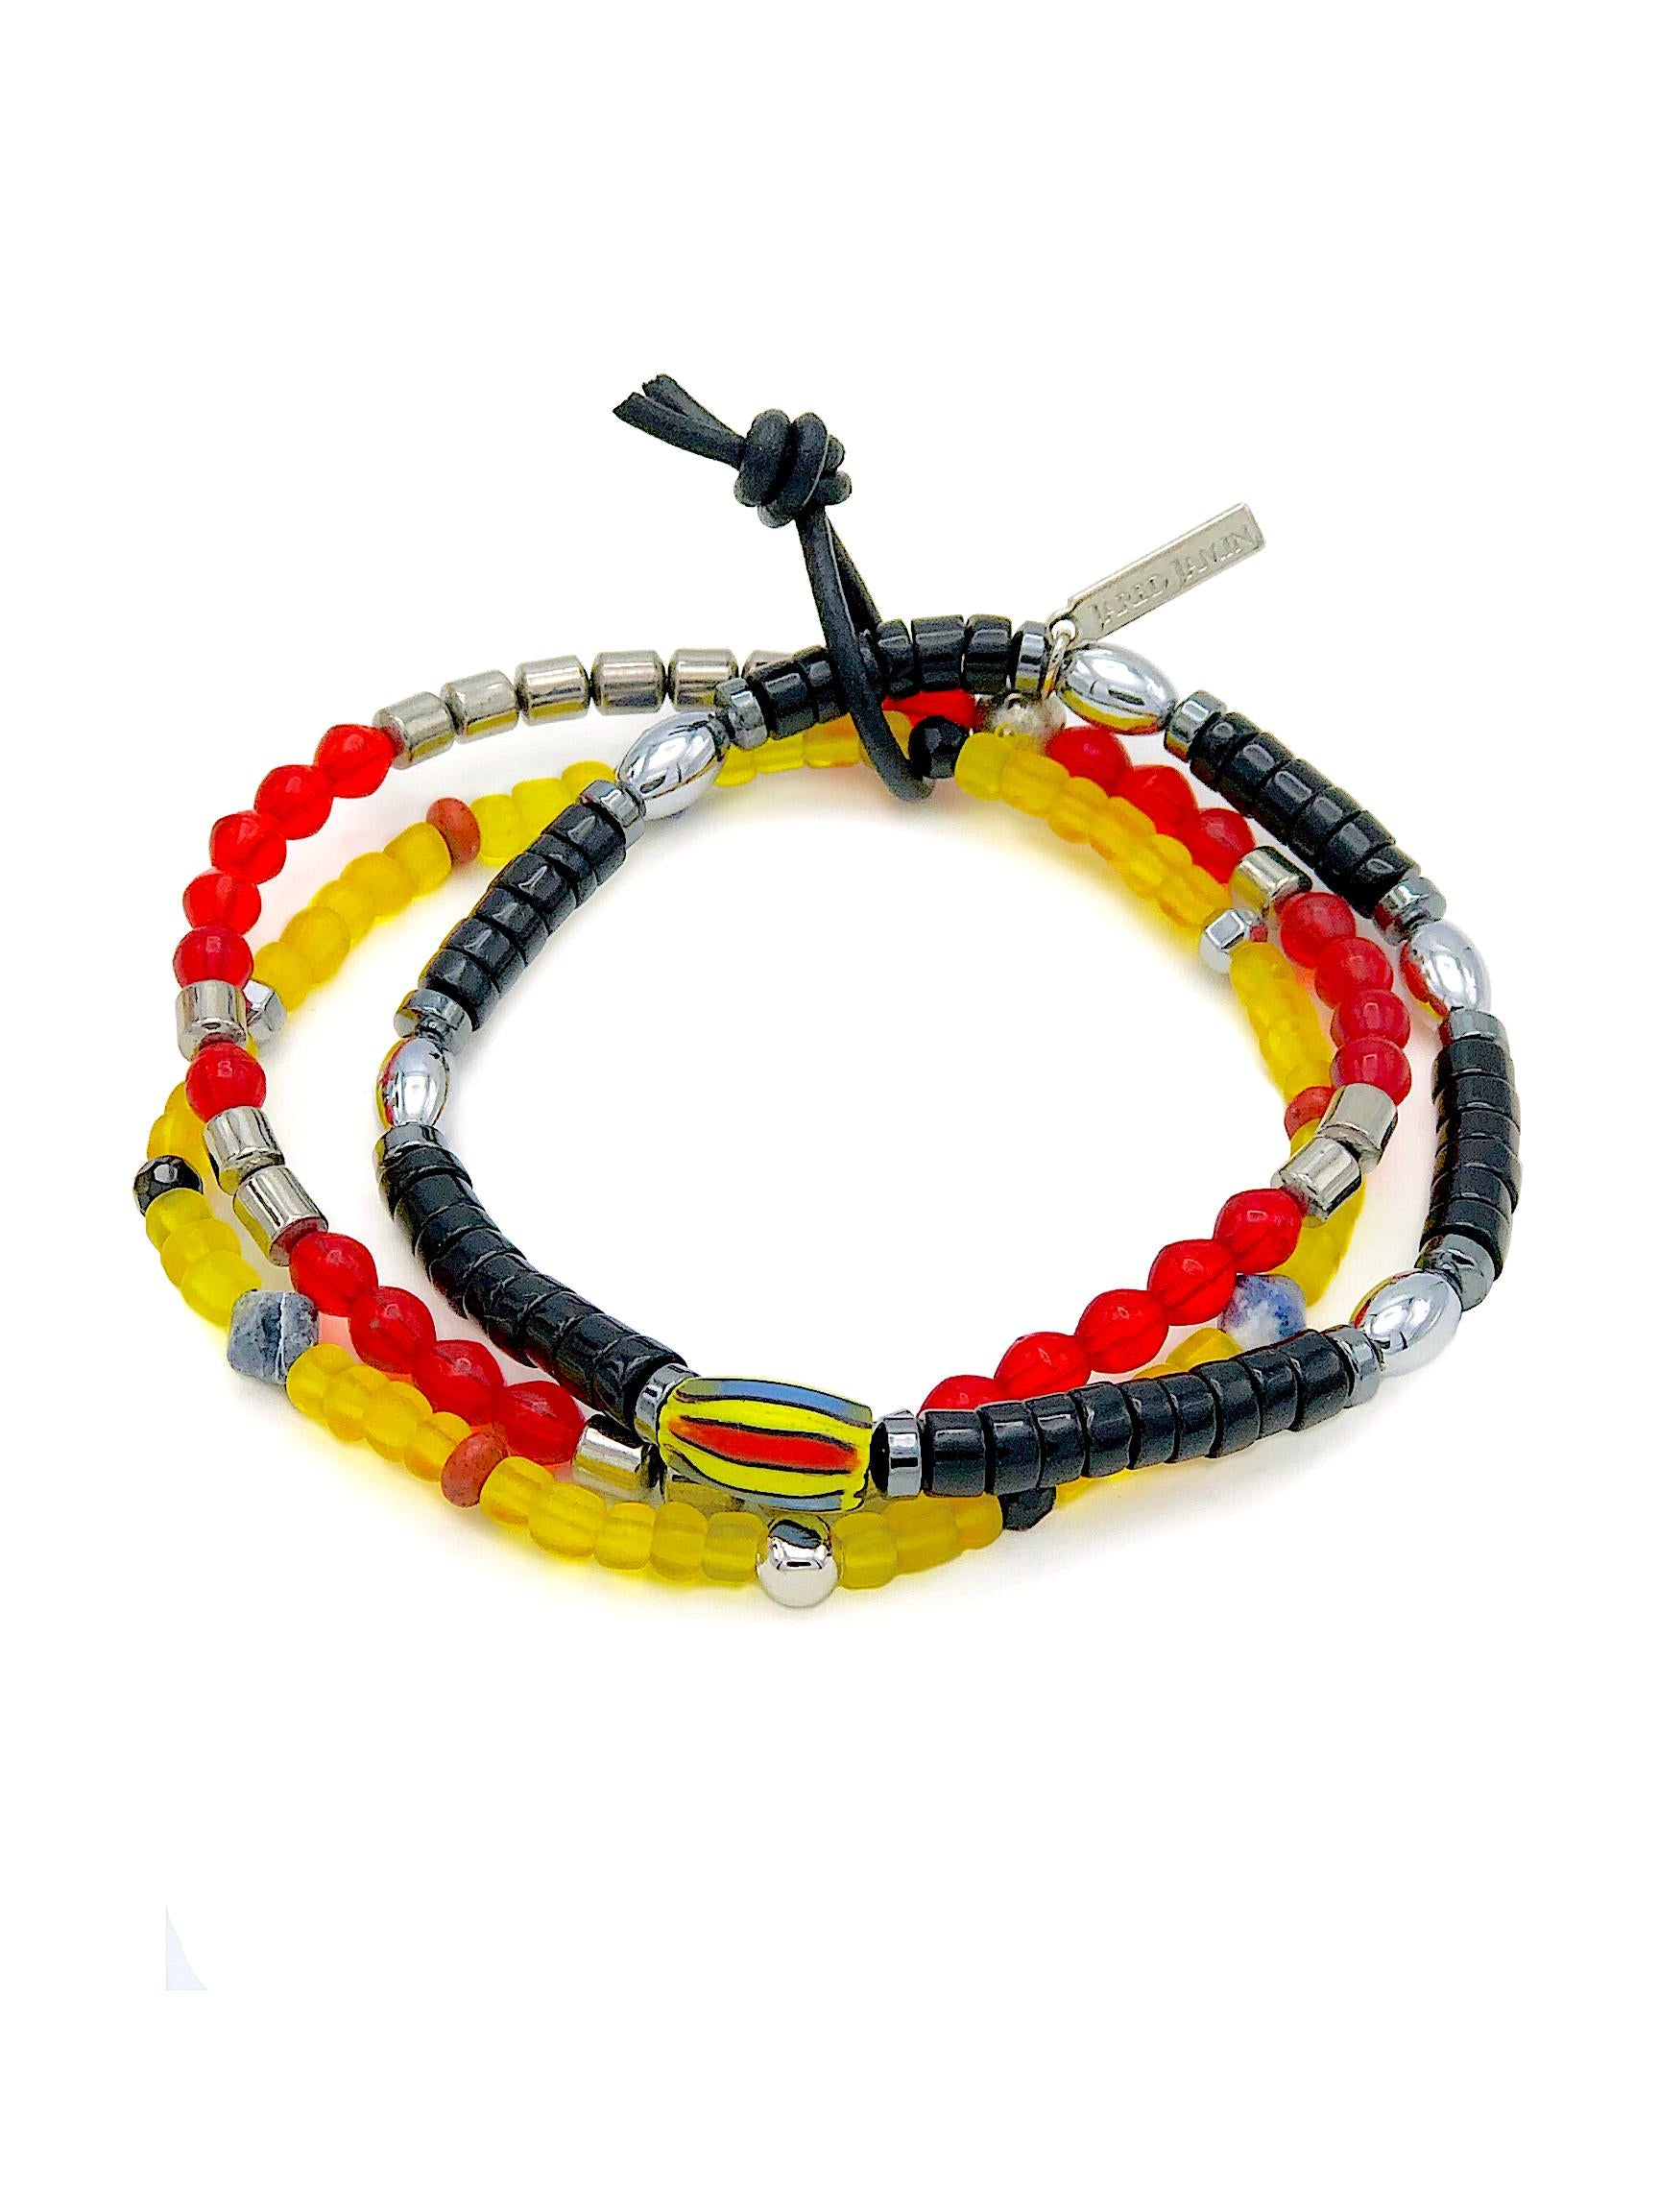 Samurai Bracelet Set-Bracelets-JAREDJAMIN Jewelry Online-JAREDJAMIN - Fashion Jewelry & Accessories